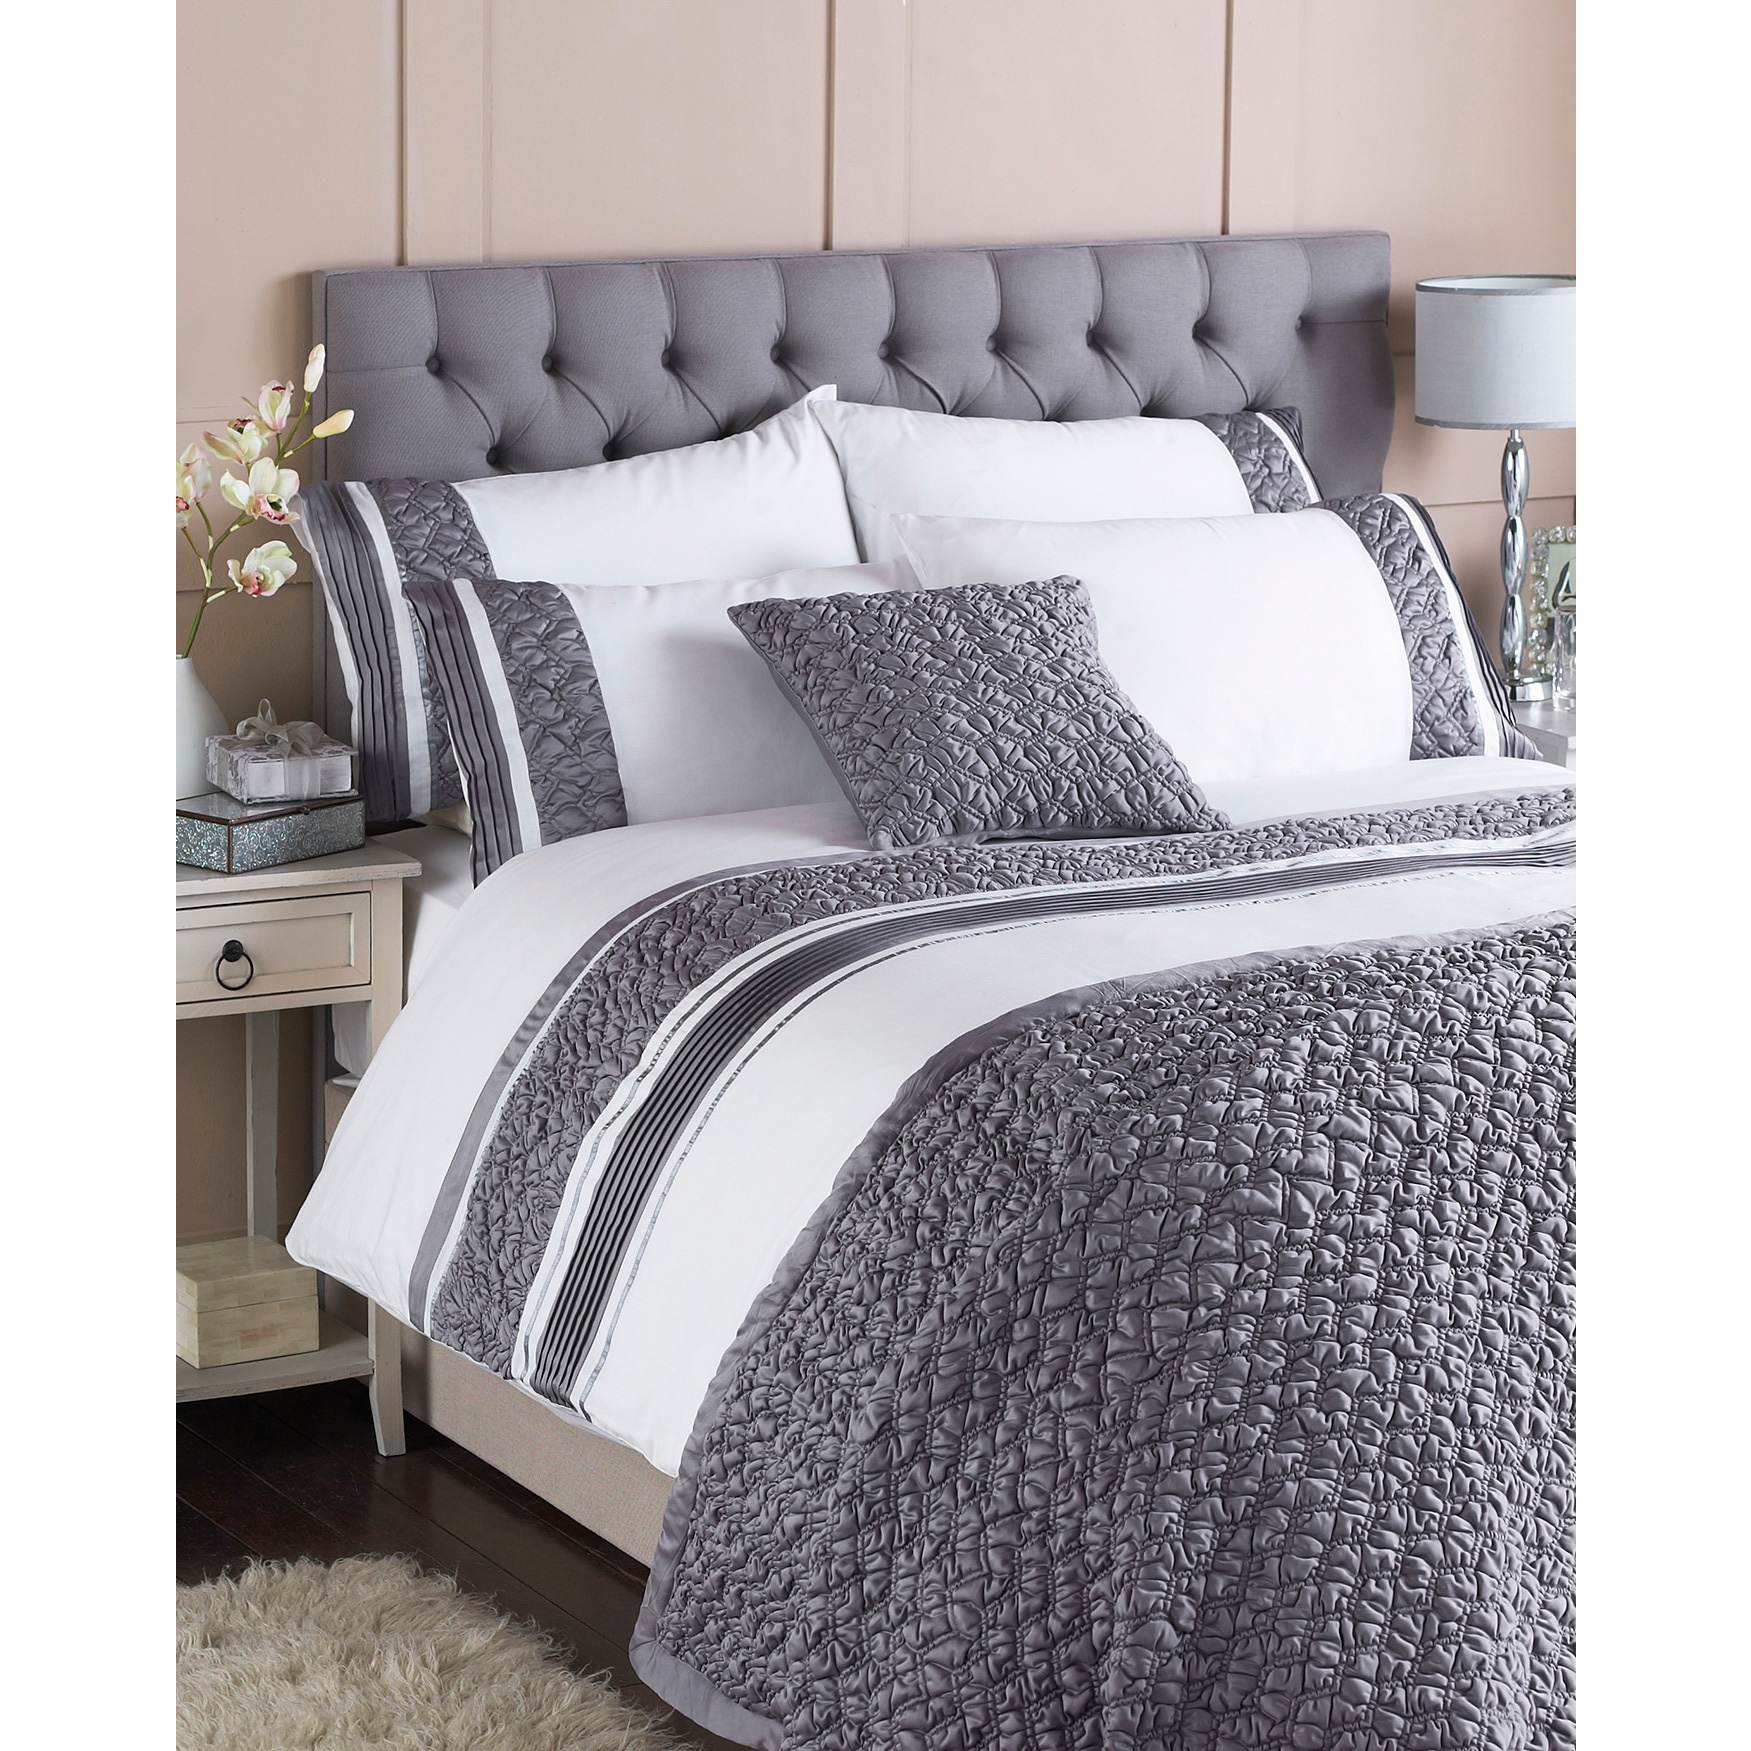 Riva Home Macy Duvet Sheet And Pillowcase Set